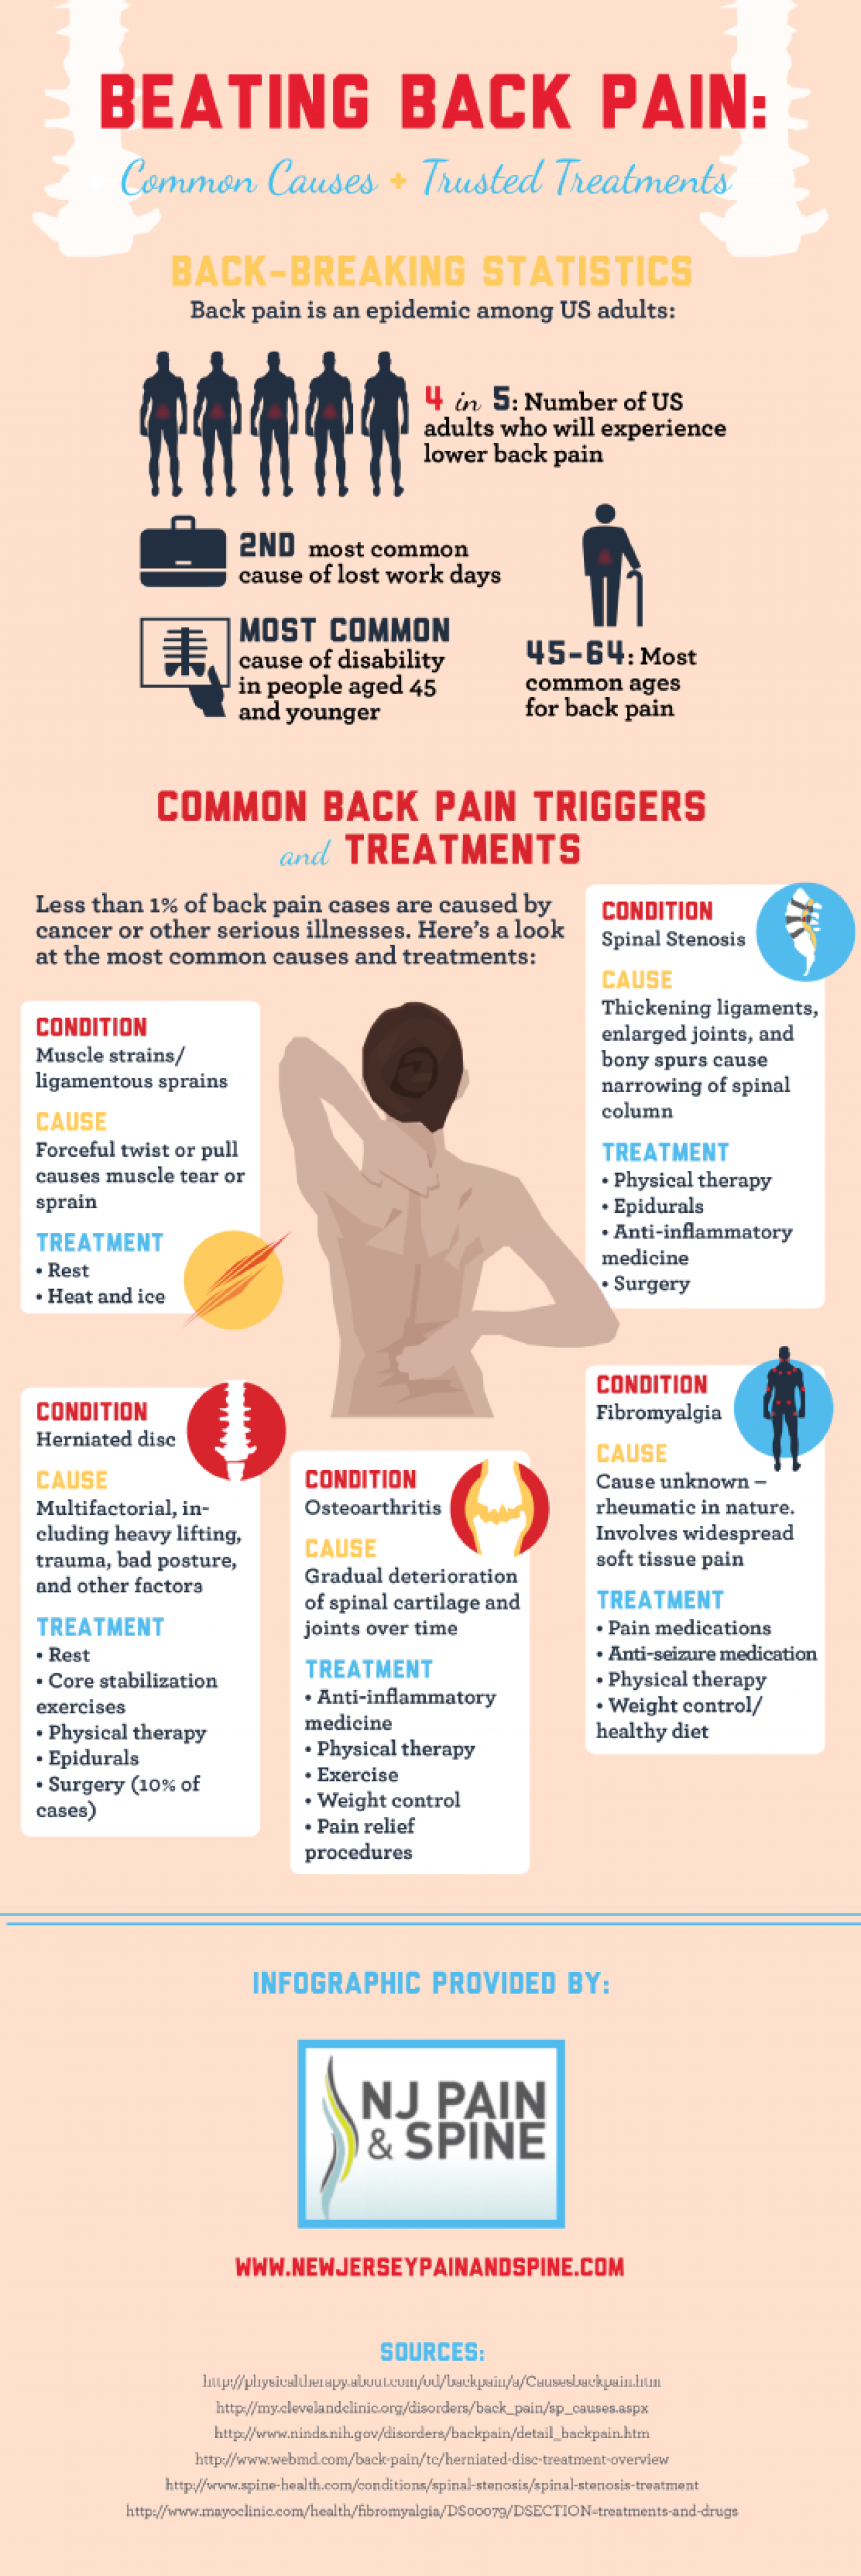 Beating Back Pain: Common Causes and Trusted Treatments  Infographic